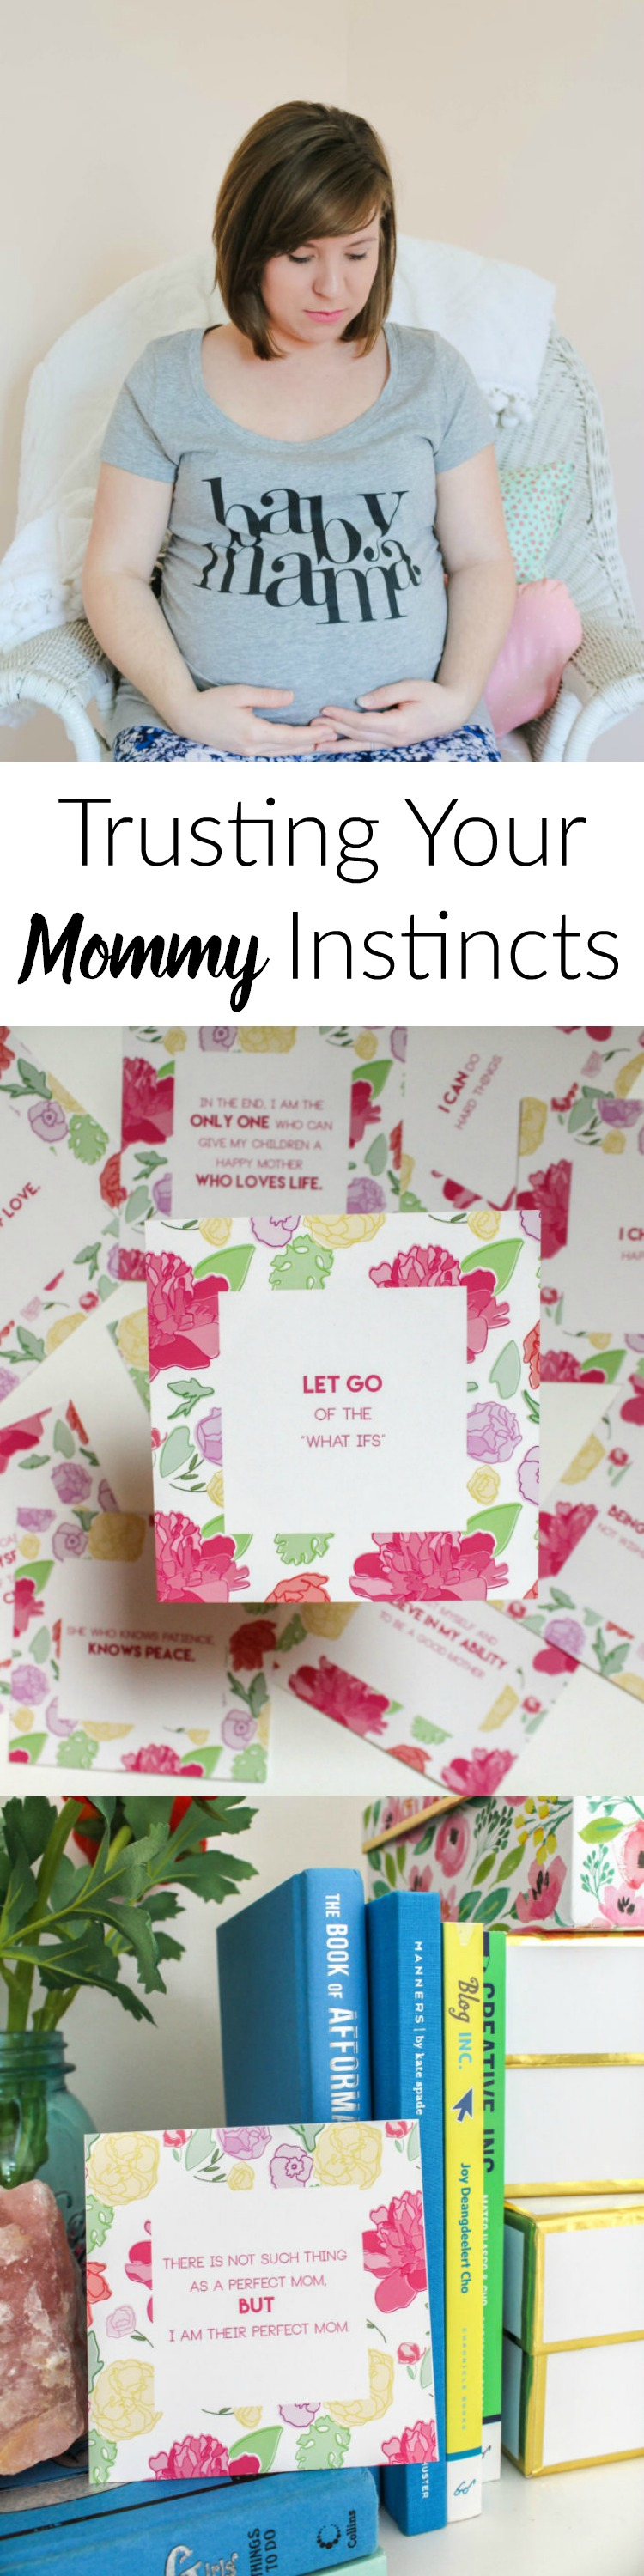 Trusting Your Mommy Instincts- Such a great encouraging post for new moms. Super cute free printable!